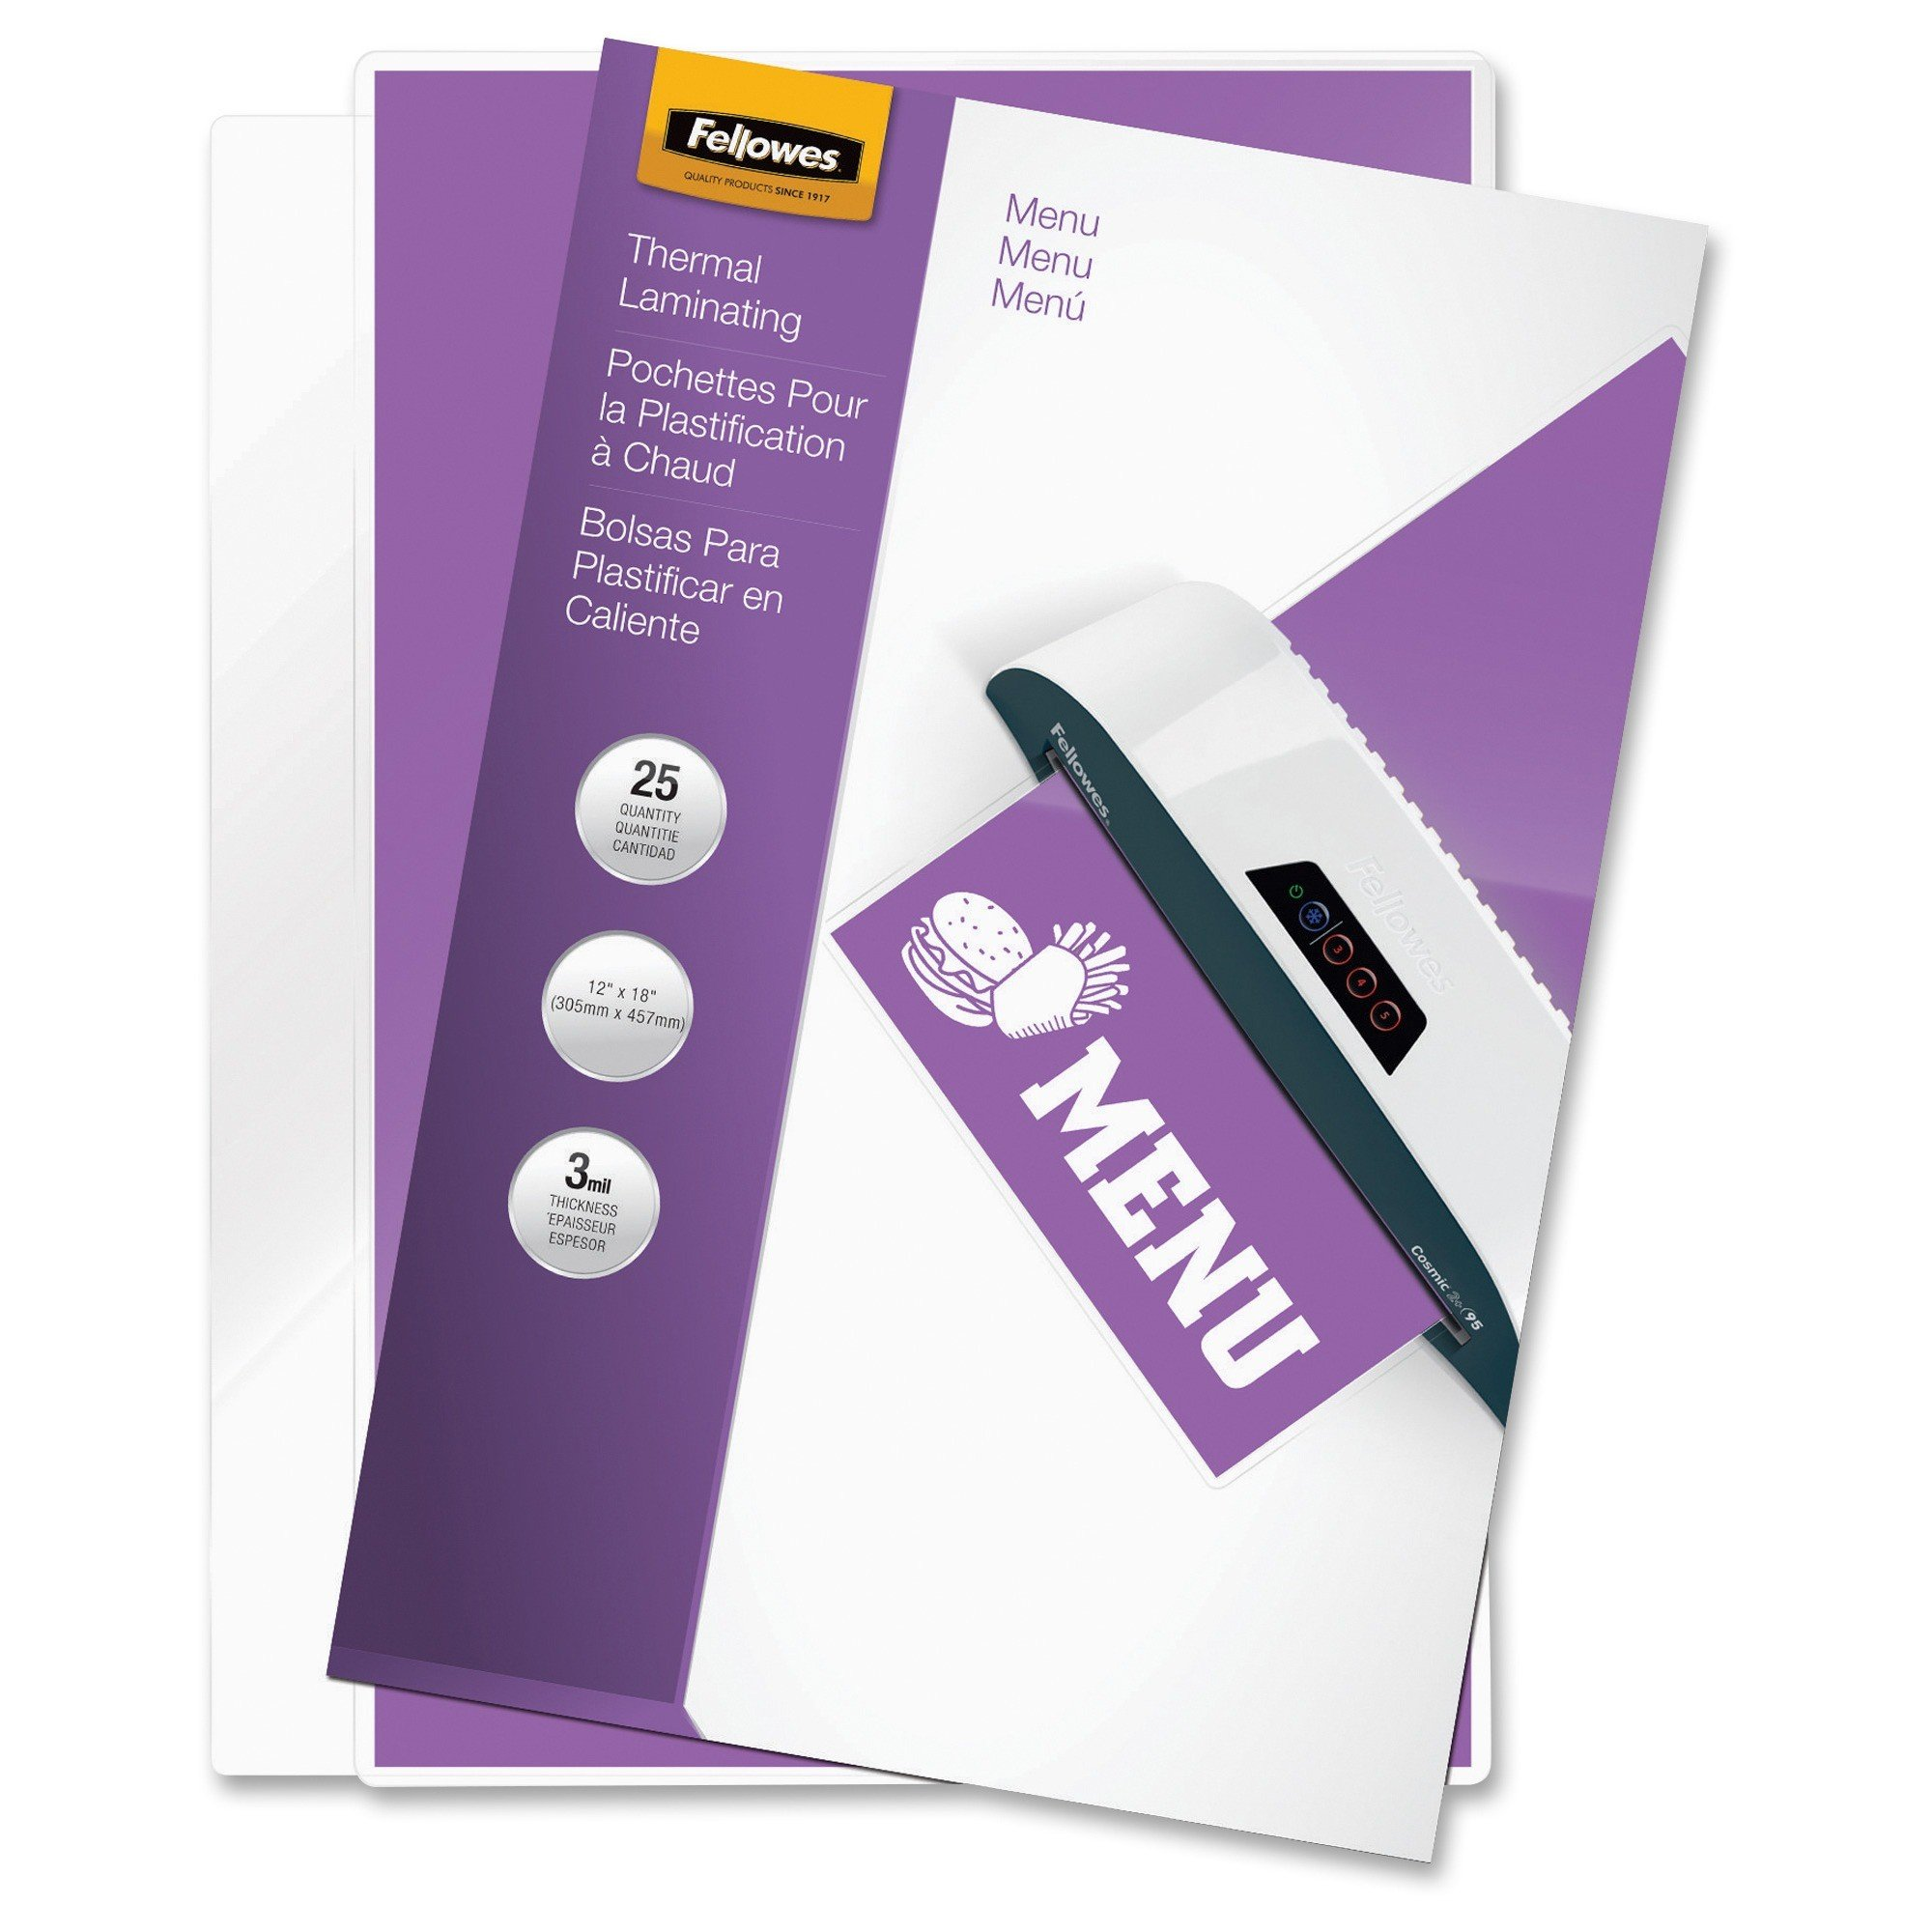 Fellowes 3 mil Laminating Menu Sheets/Pouches 11.50 x 17.50""